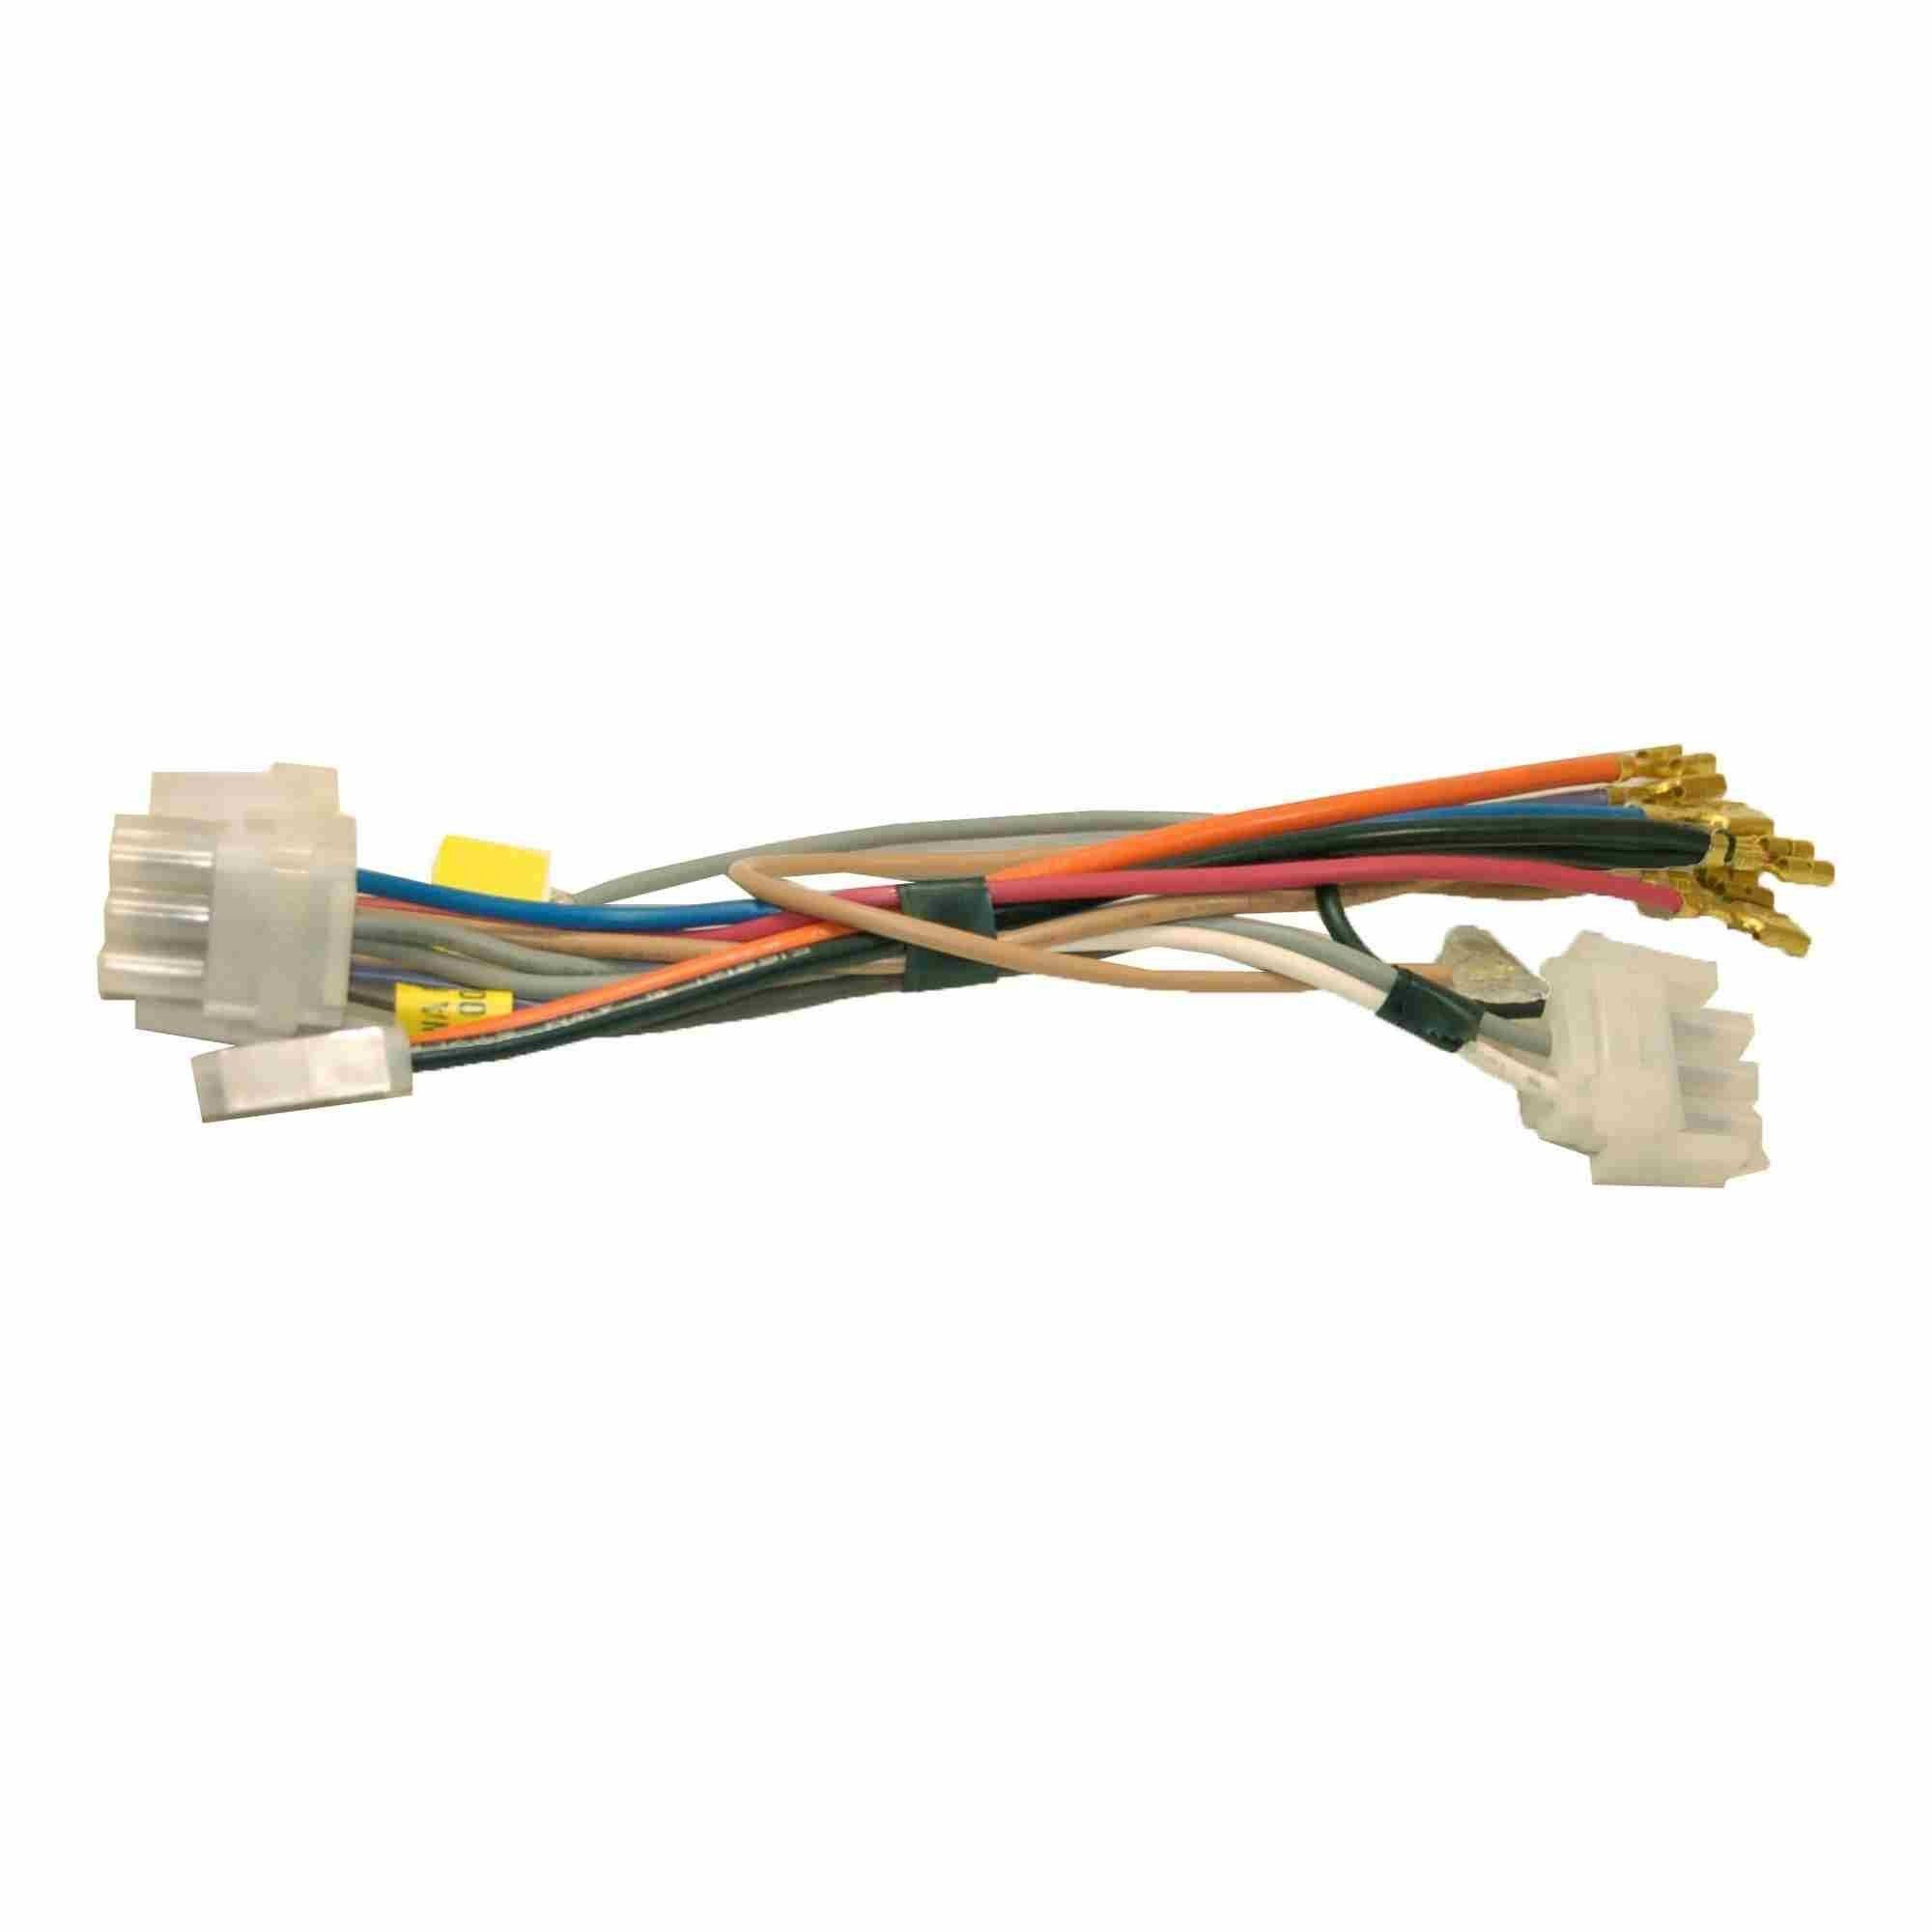 medium resolution of 131484100 clothes dryer wire harness